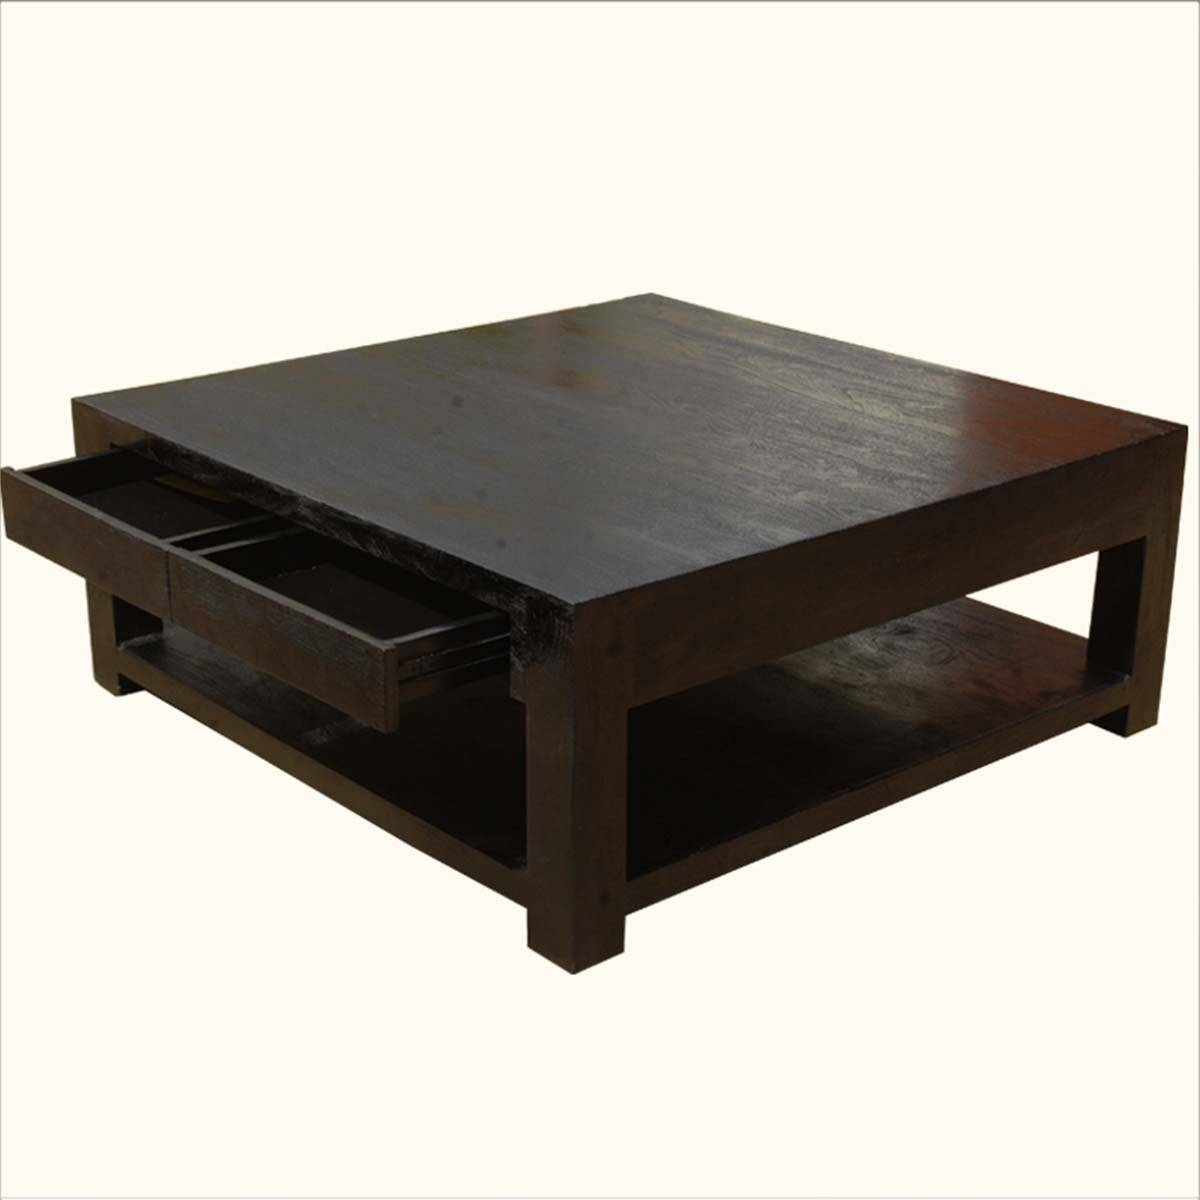 Espresso Solid Wood Coffee Table | Coffee Tables Decoration intended for Dark Wooden Coffee Tables (Image 23 of 30)